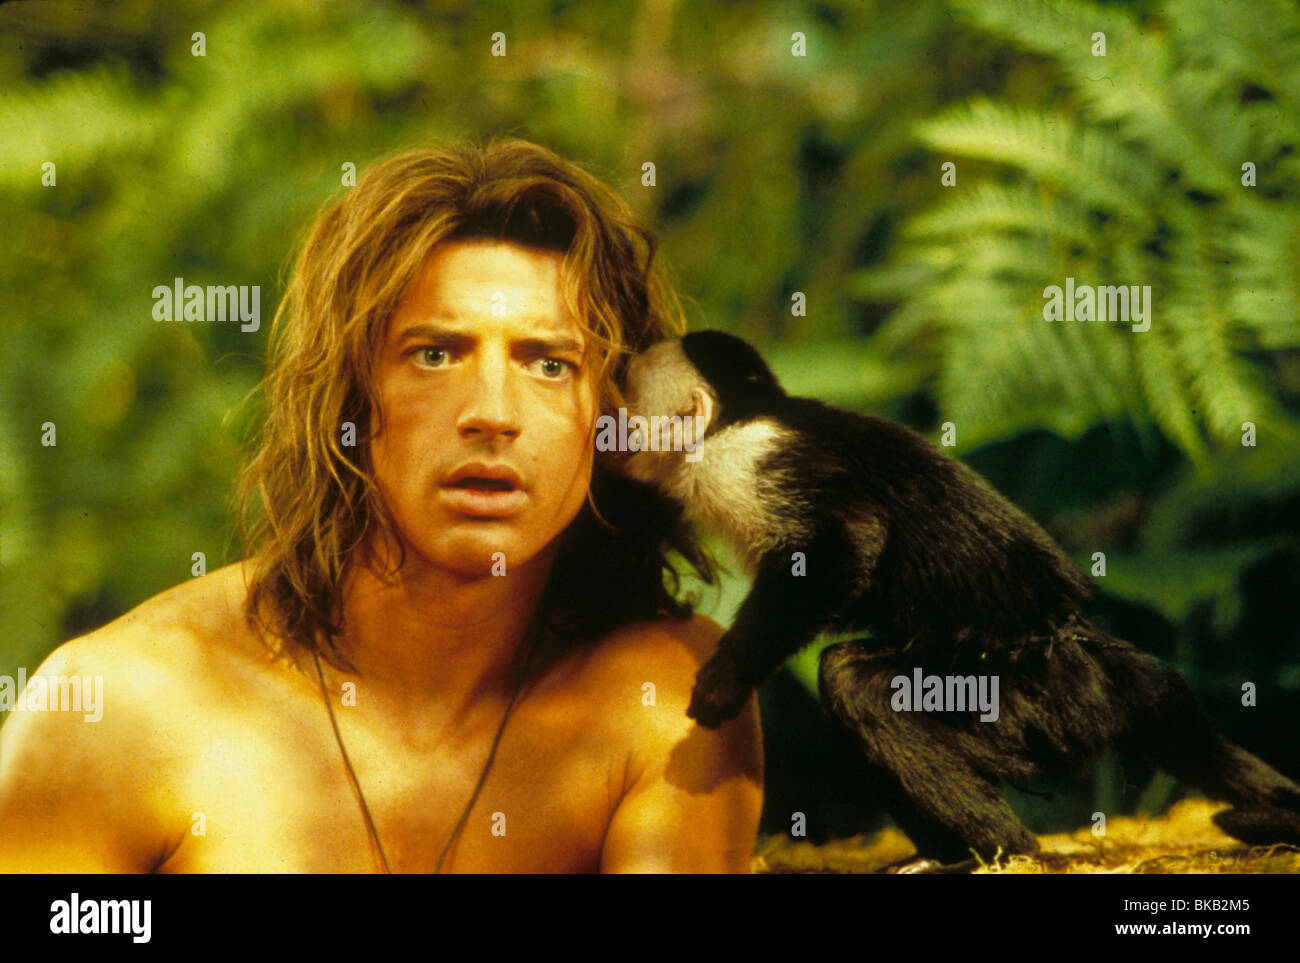 george of the jungle 1997 movie